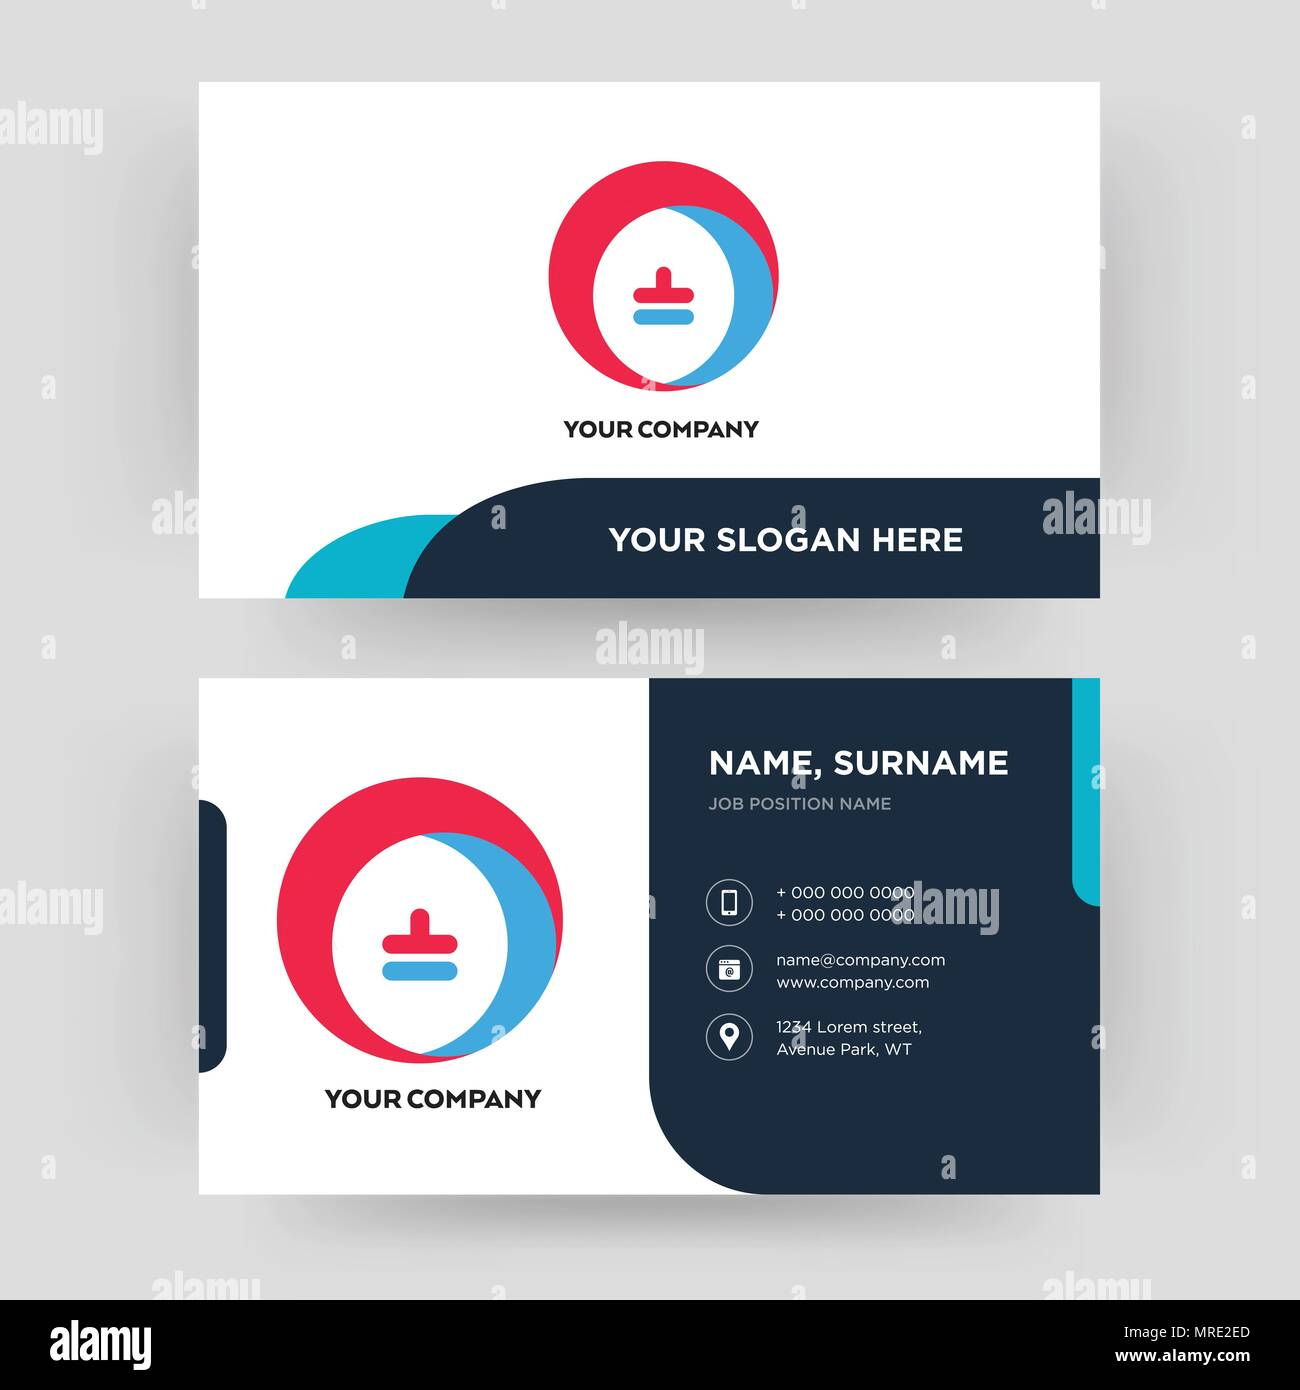 Heating Cooling Business Card Design Template Visiting For Your